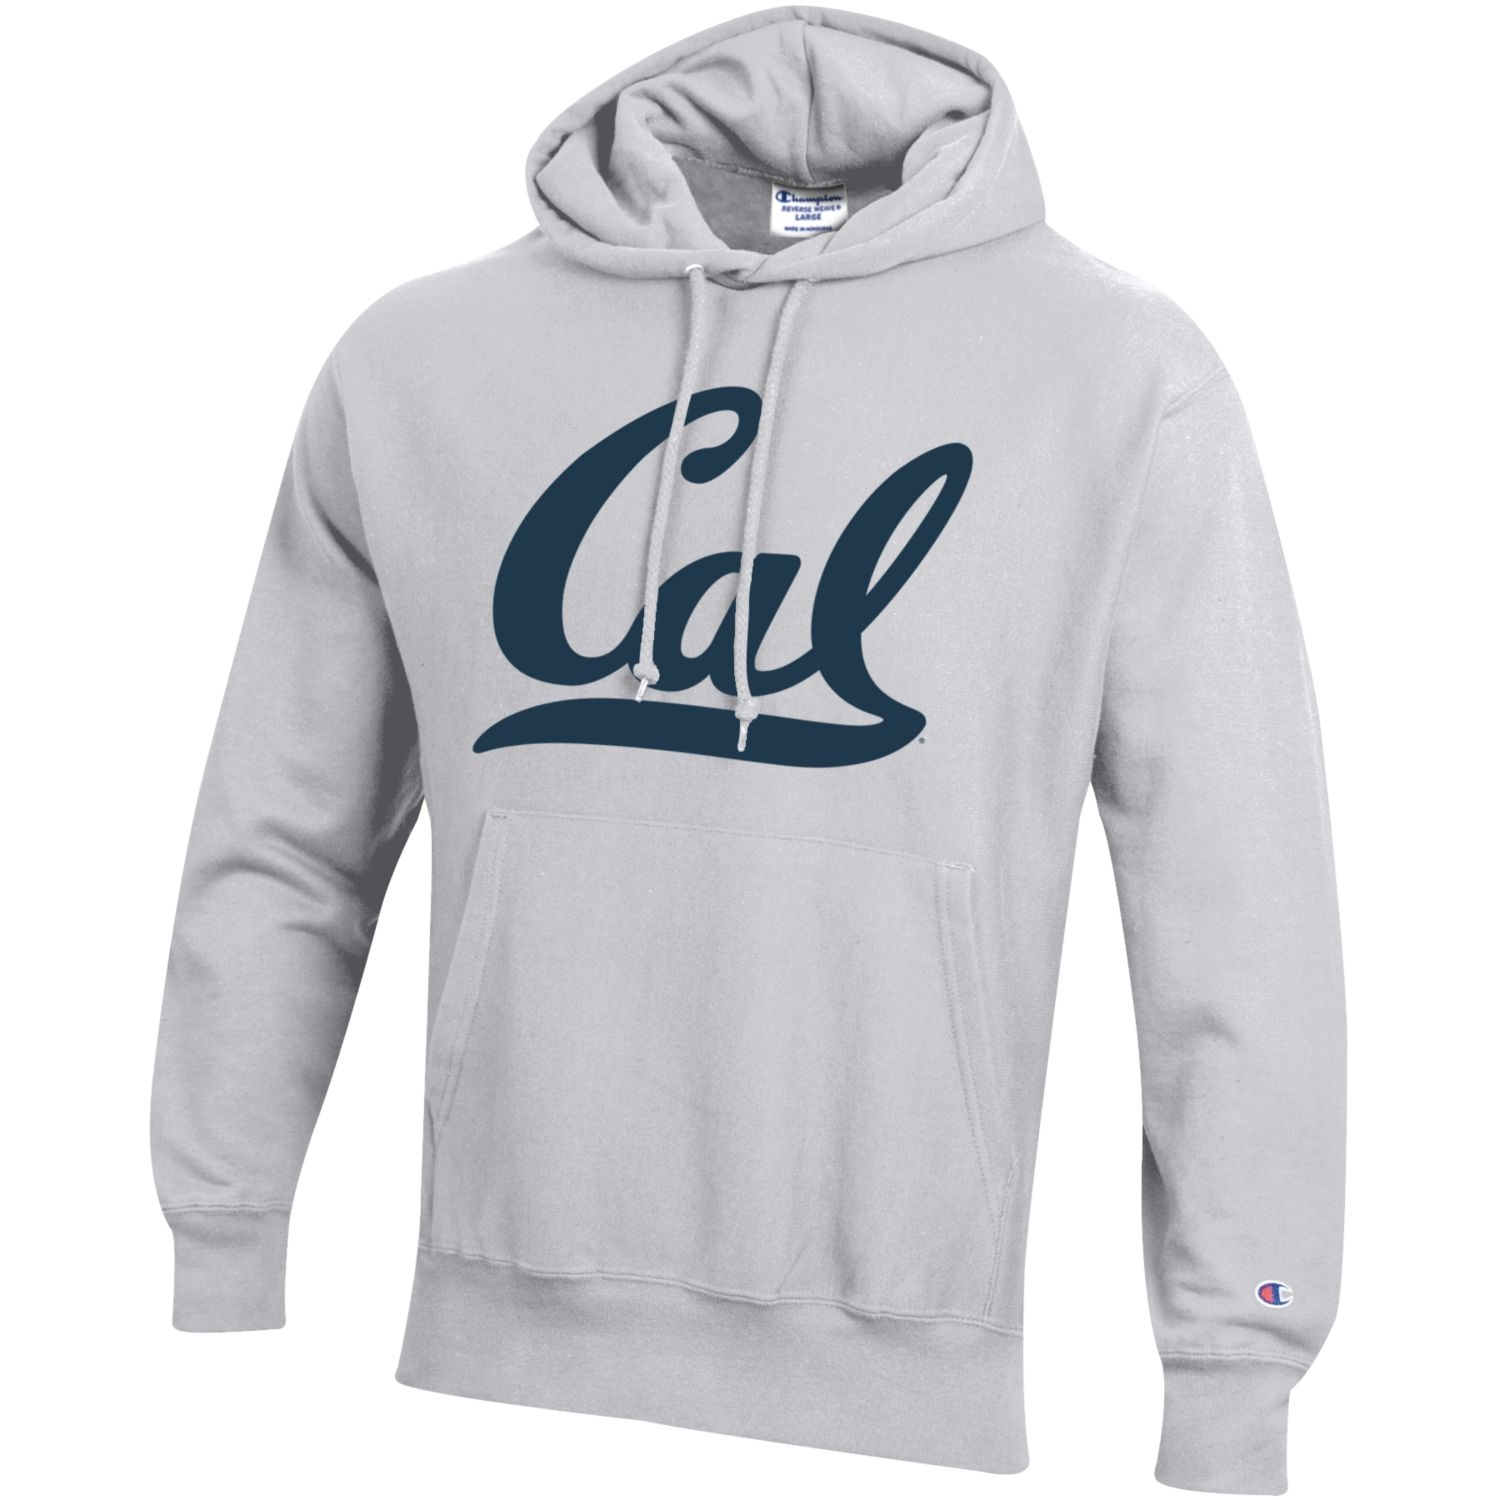 University of California Berkeley Champion Reverse Weave Hood Cal Logo